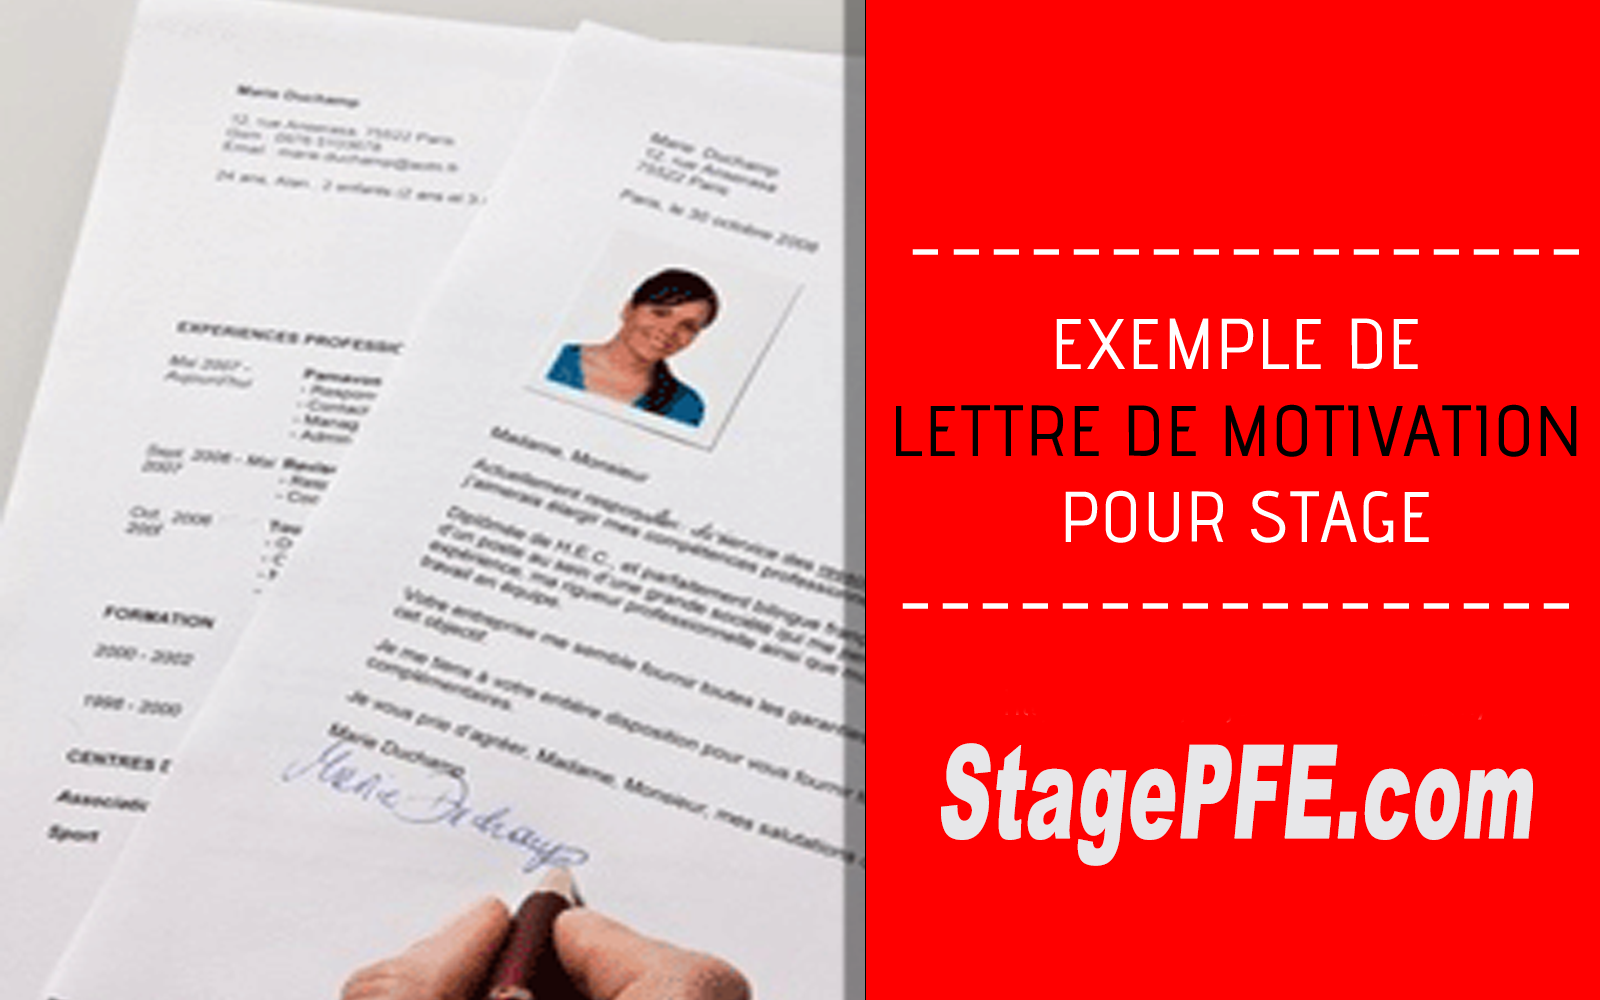 modele   exemple de lettre de motivation professionelle pour stage